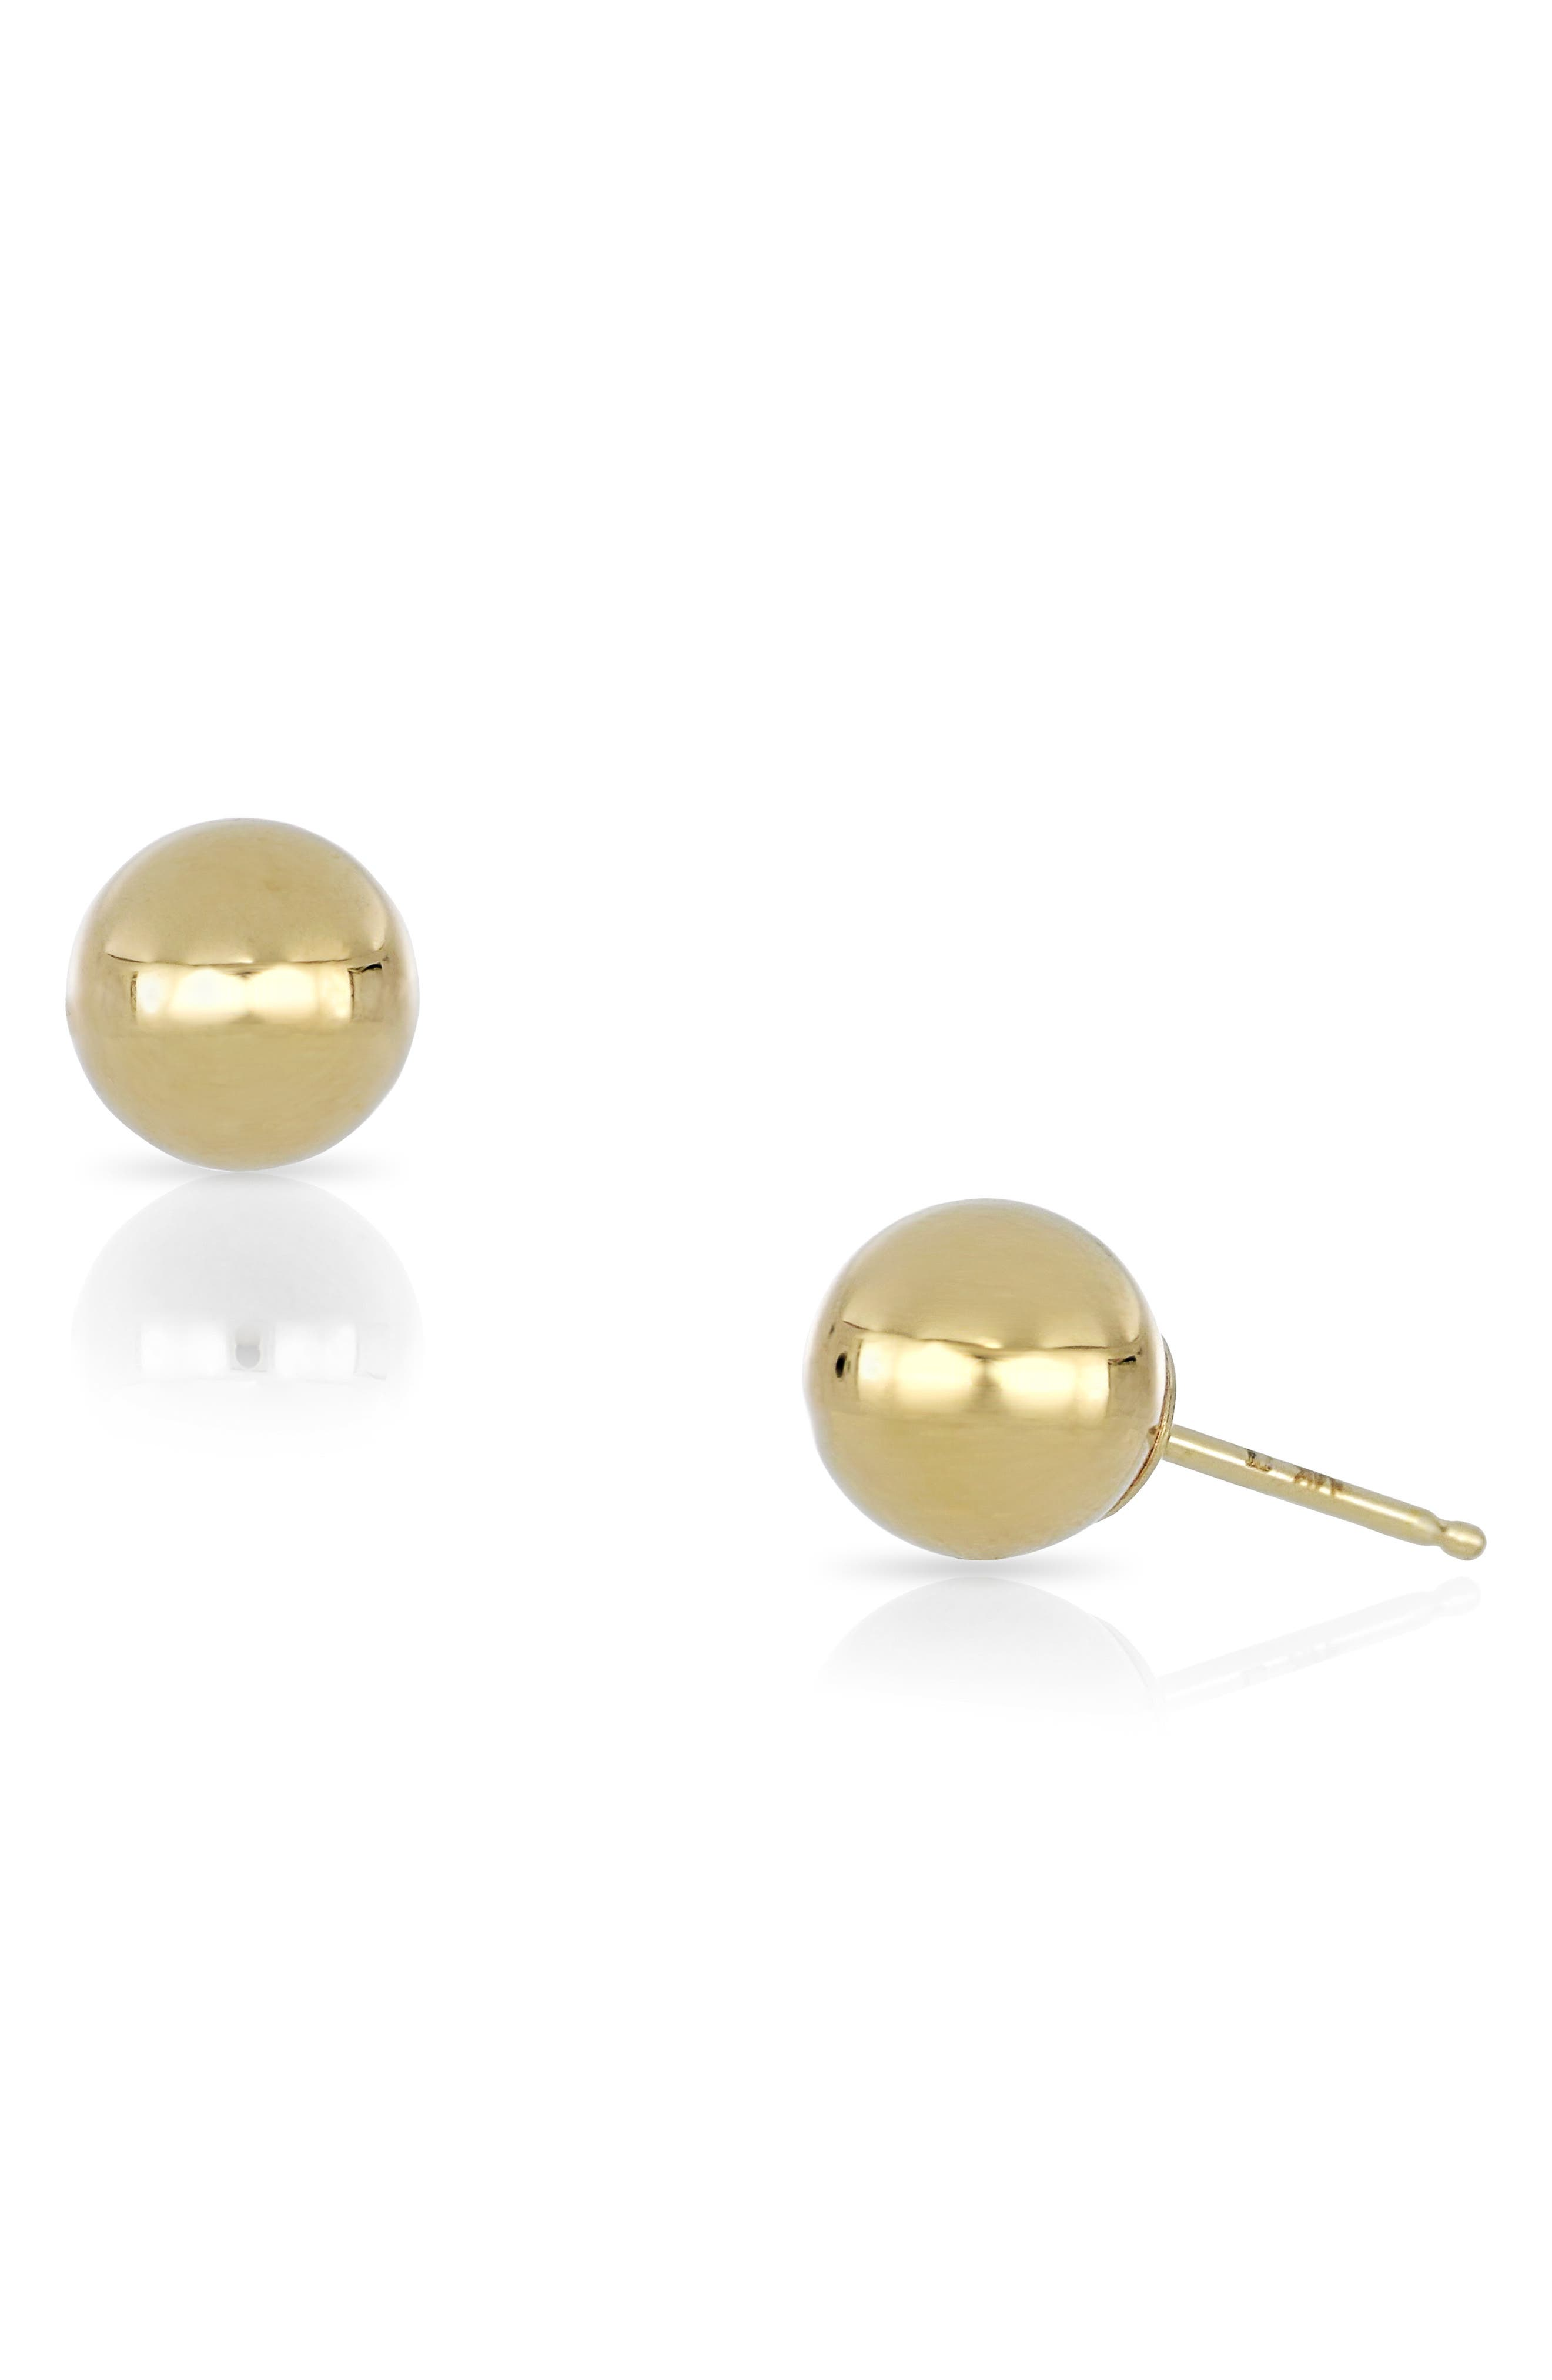 14K Gold Small Ball Stud Earrings (Nordstrom Exclusive)